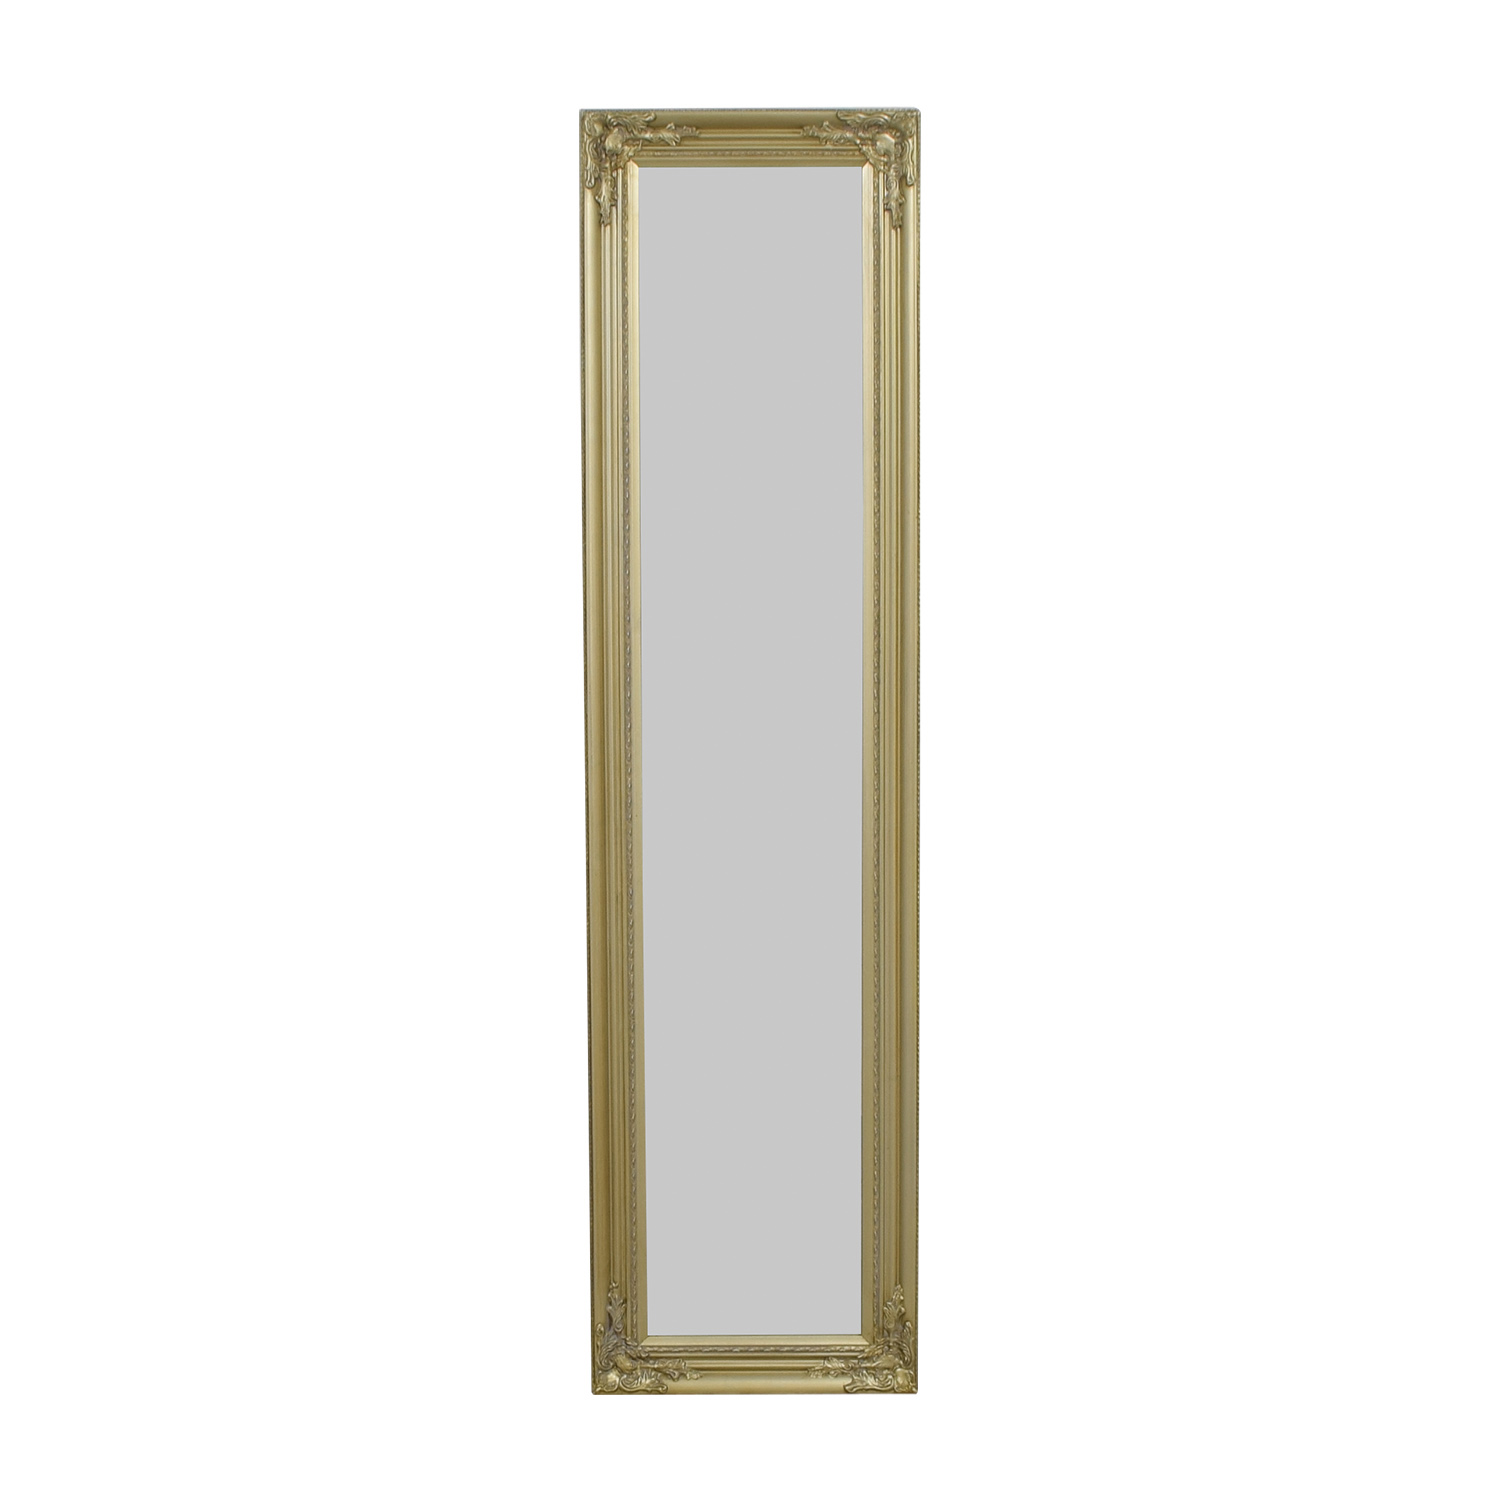 Full Length Ornate Gold Mirror nj